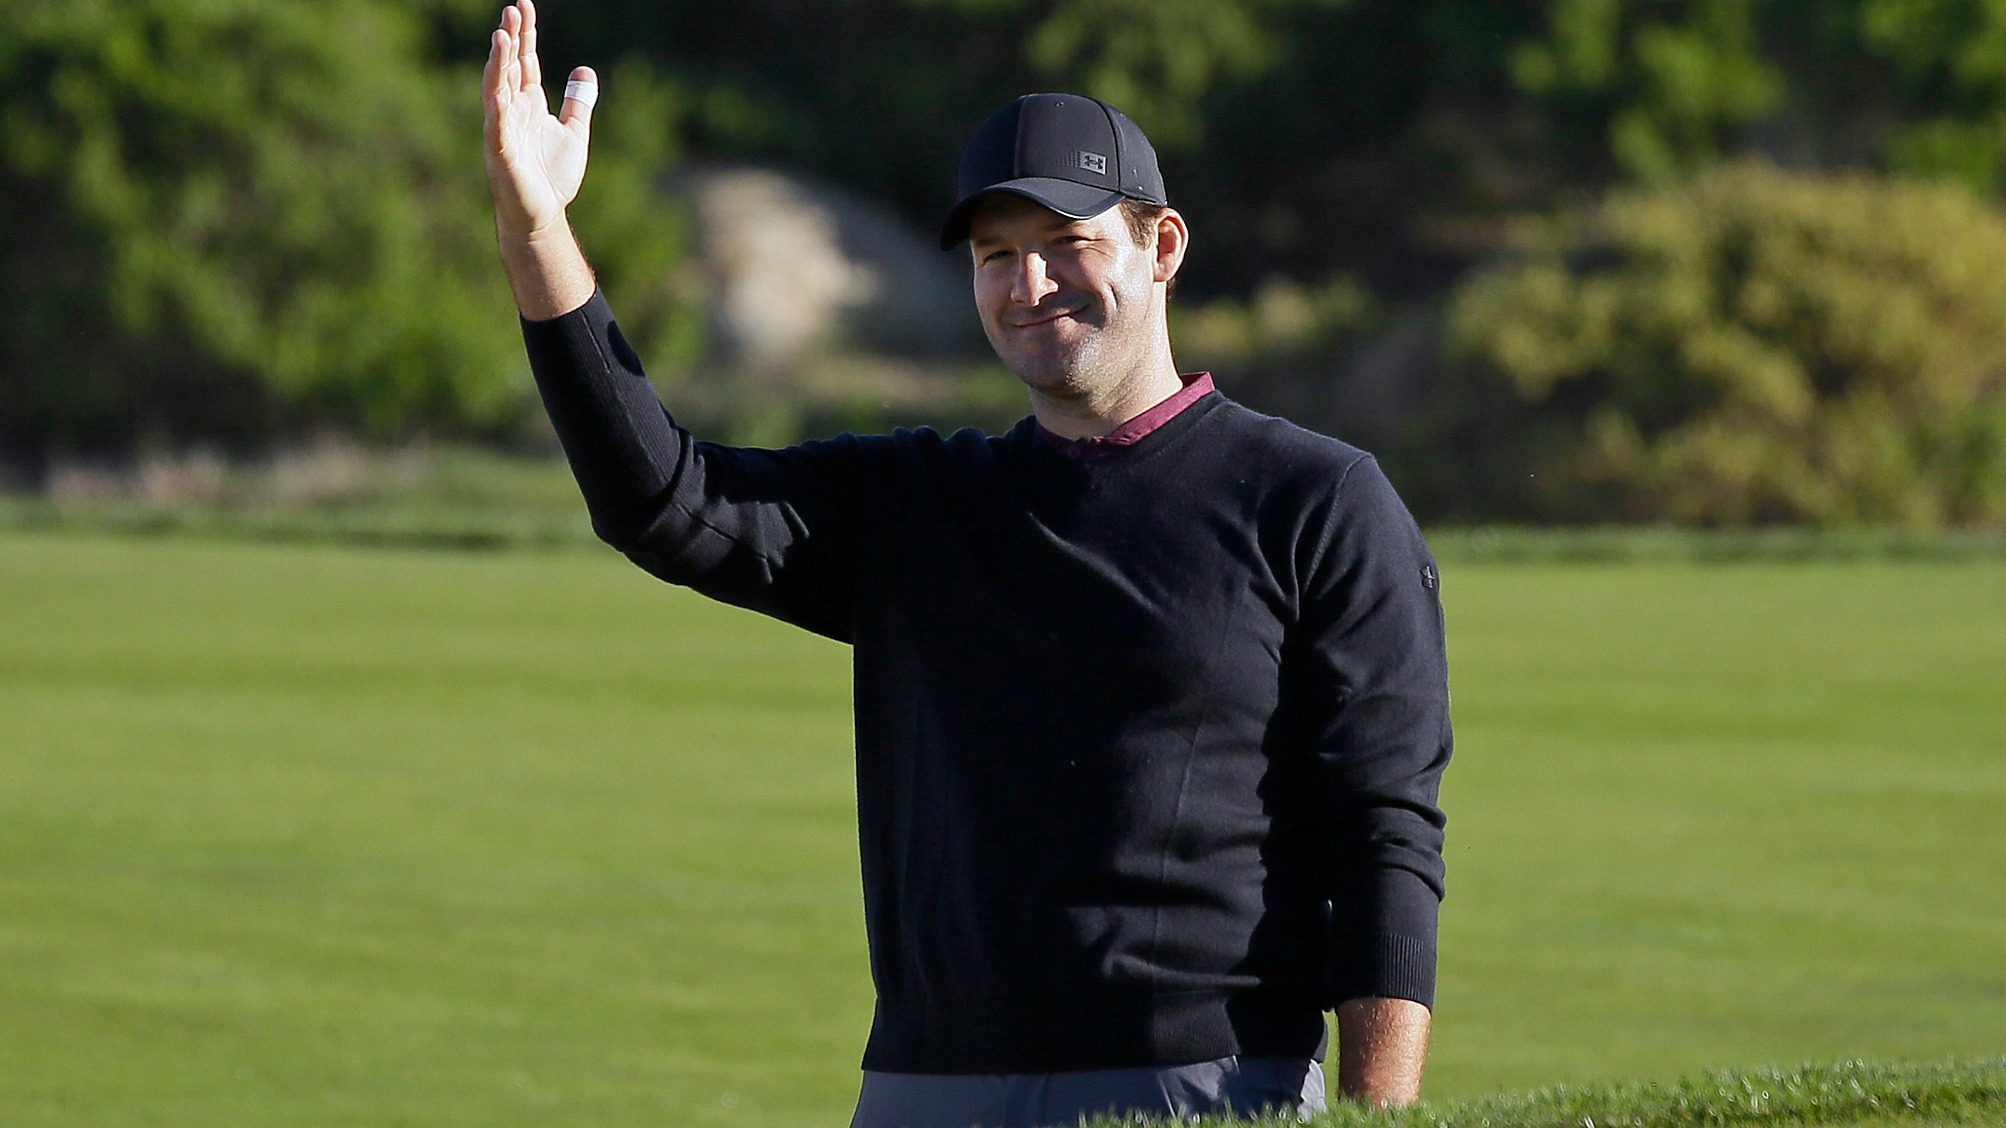 Tony Romo Primed To Miss Cut On His Home Course